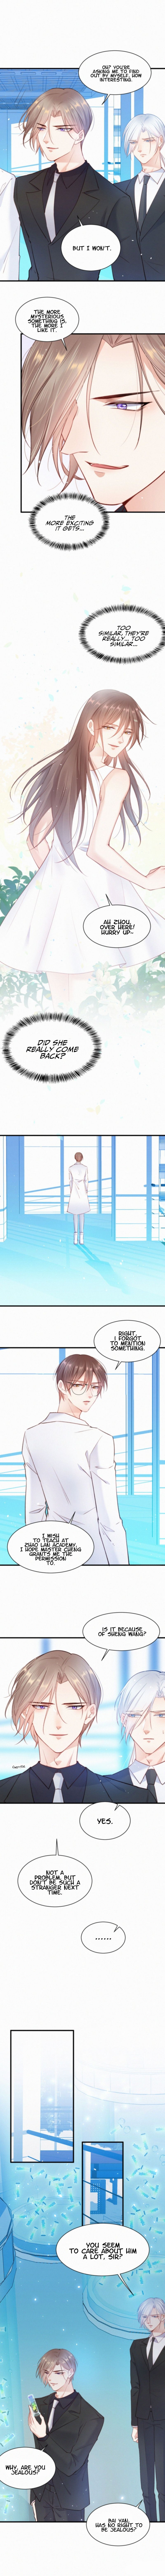 In Or Out - chapter 9 - #3